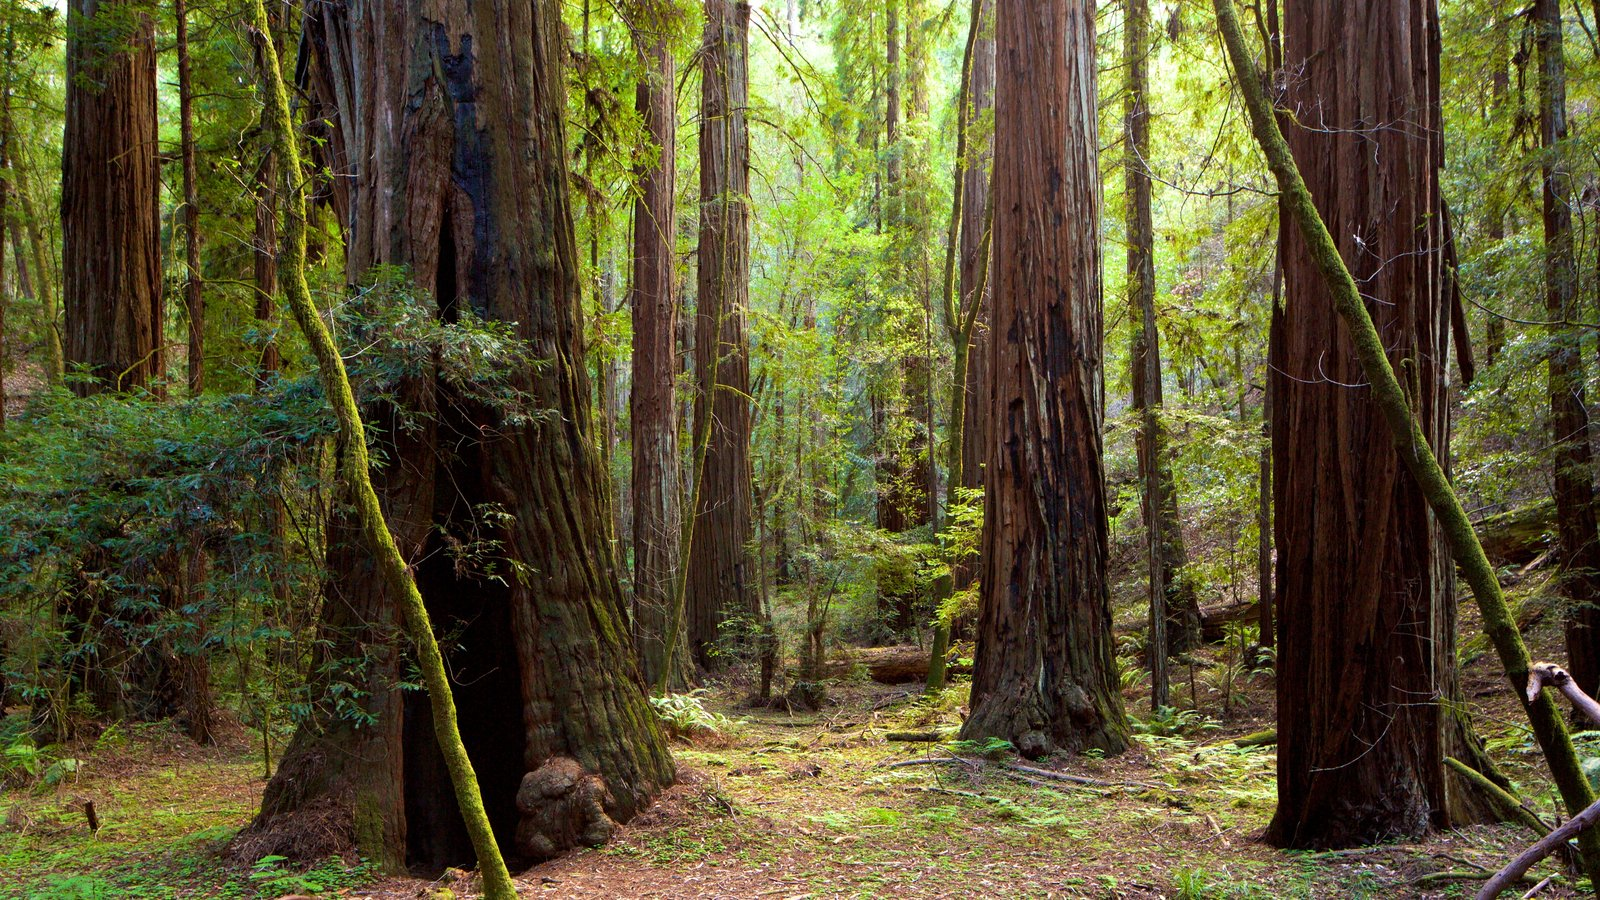 Armstrong Redwoods State Park which includes forests